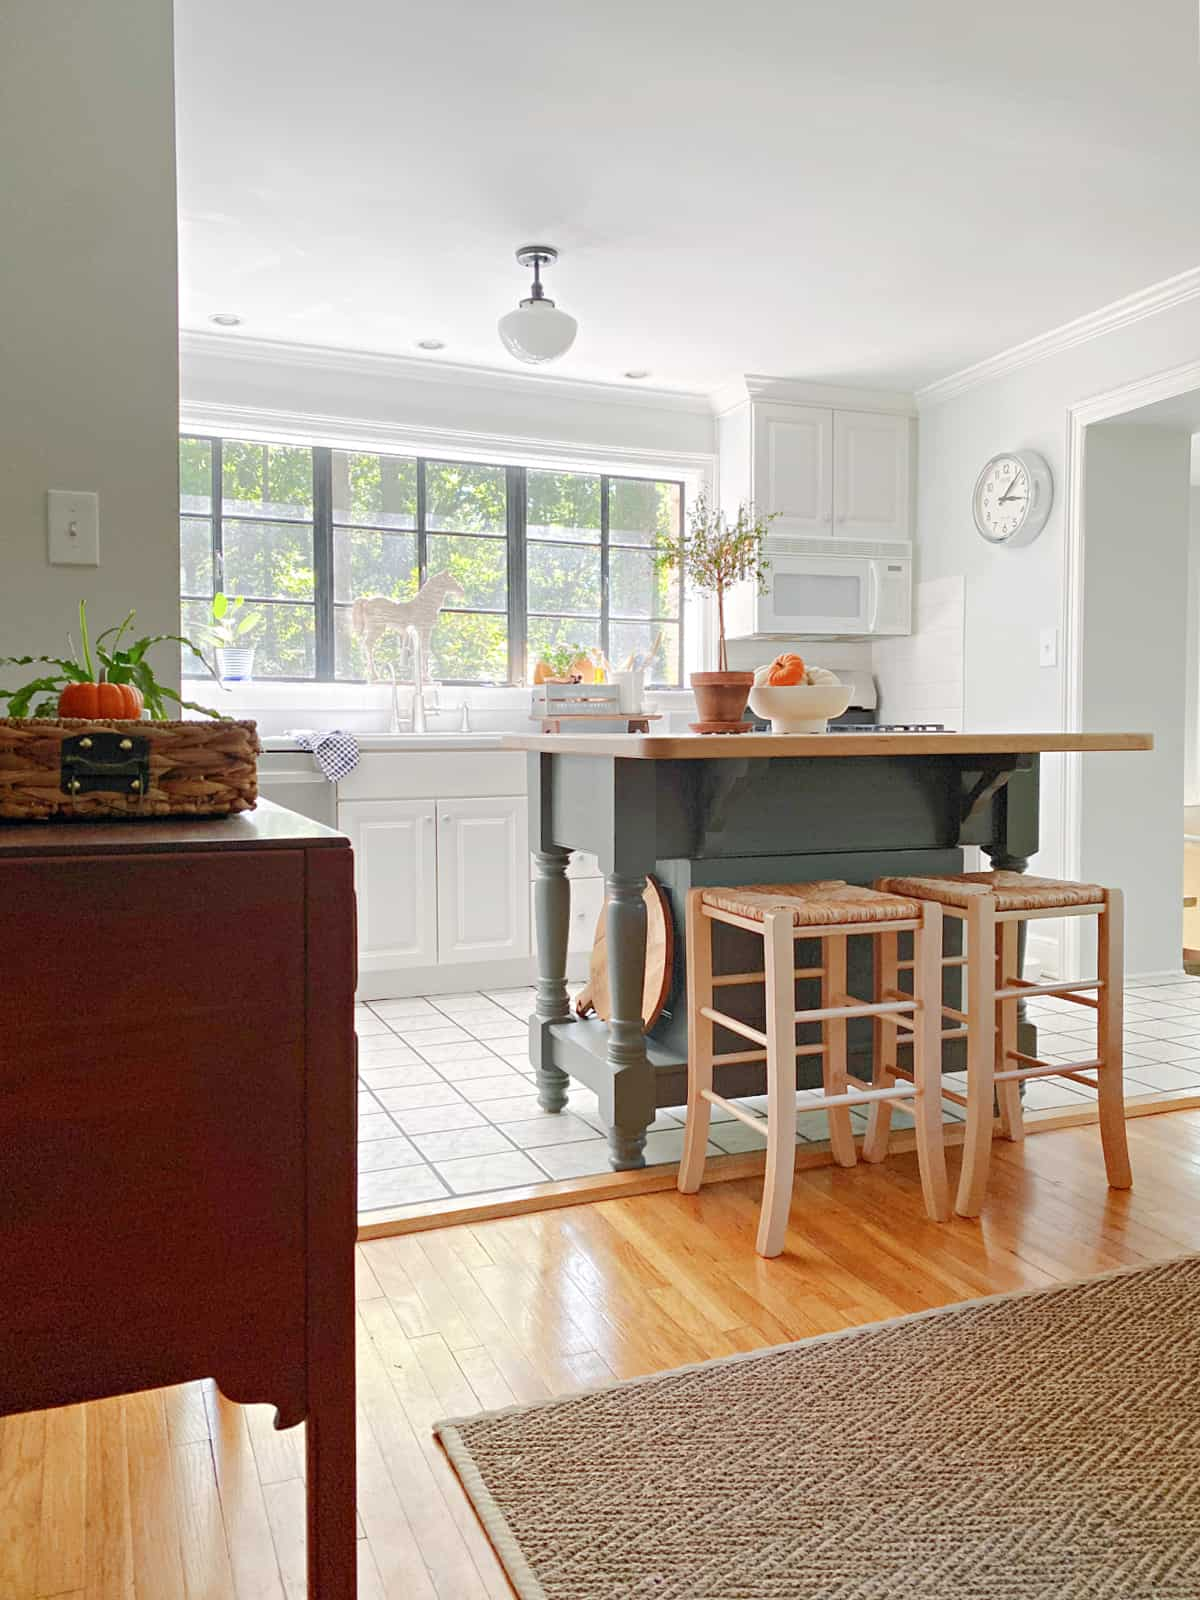 view in to kitchen with island